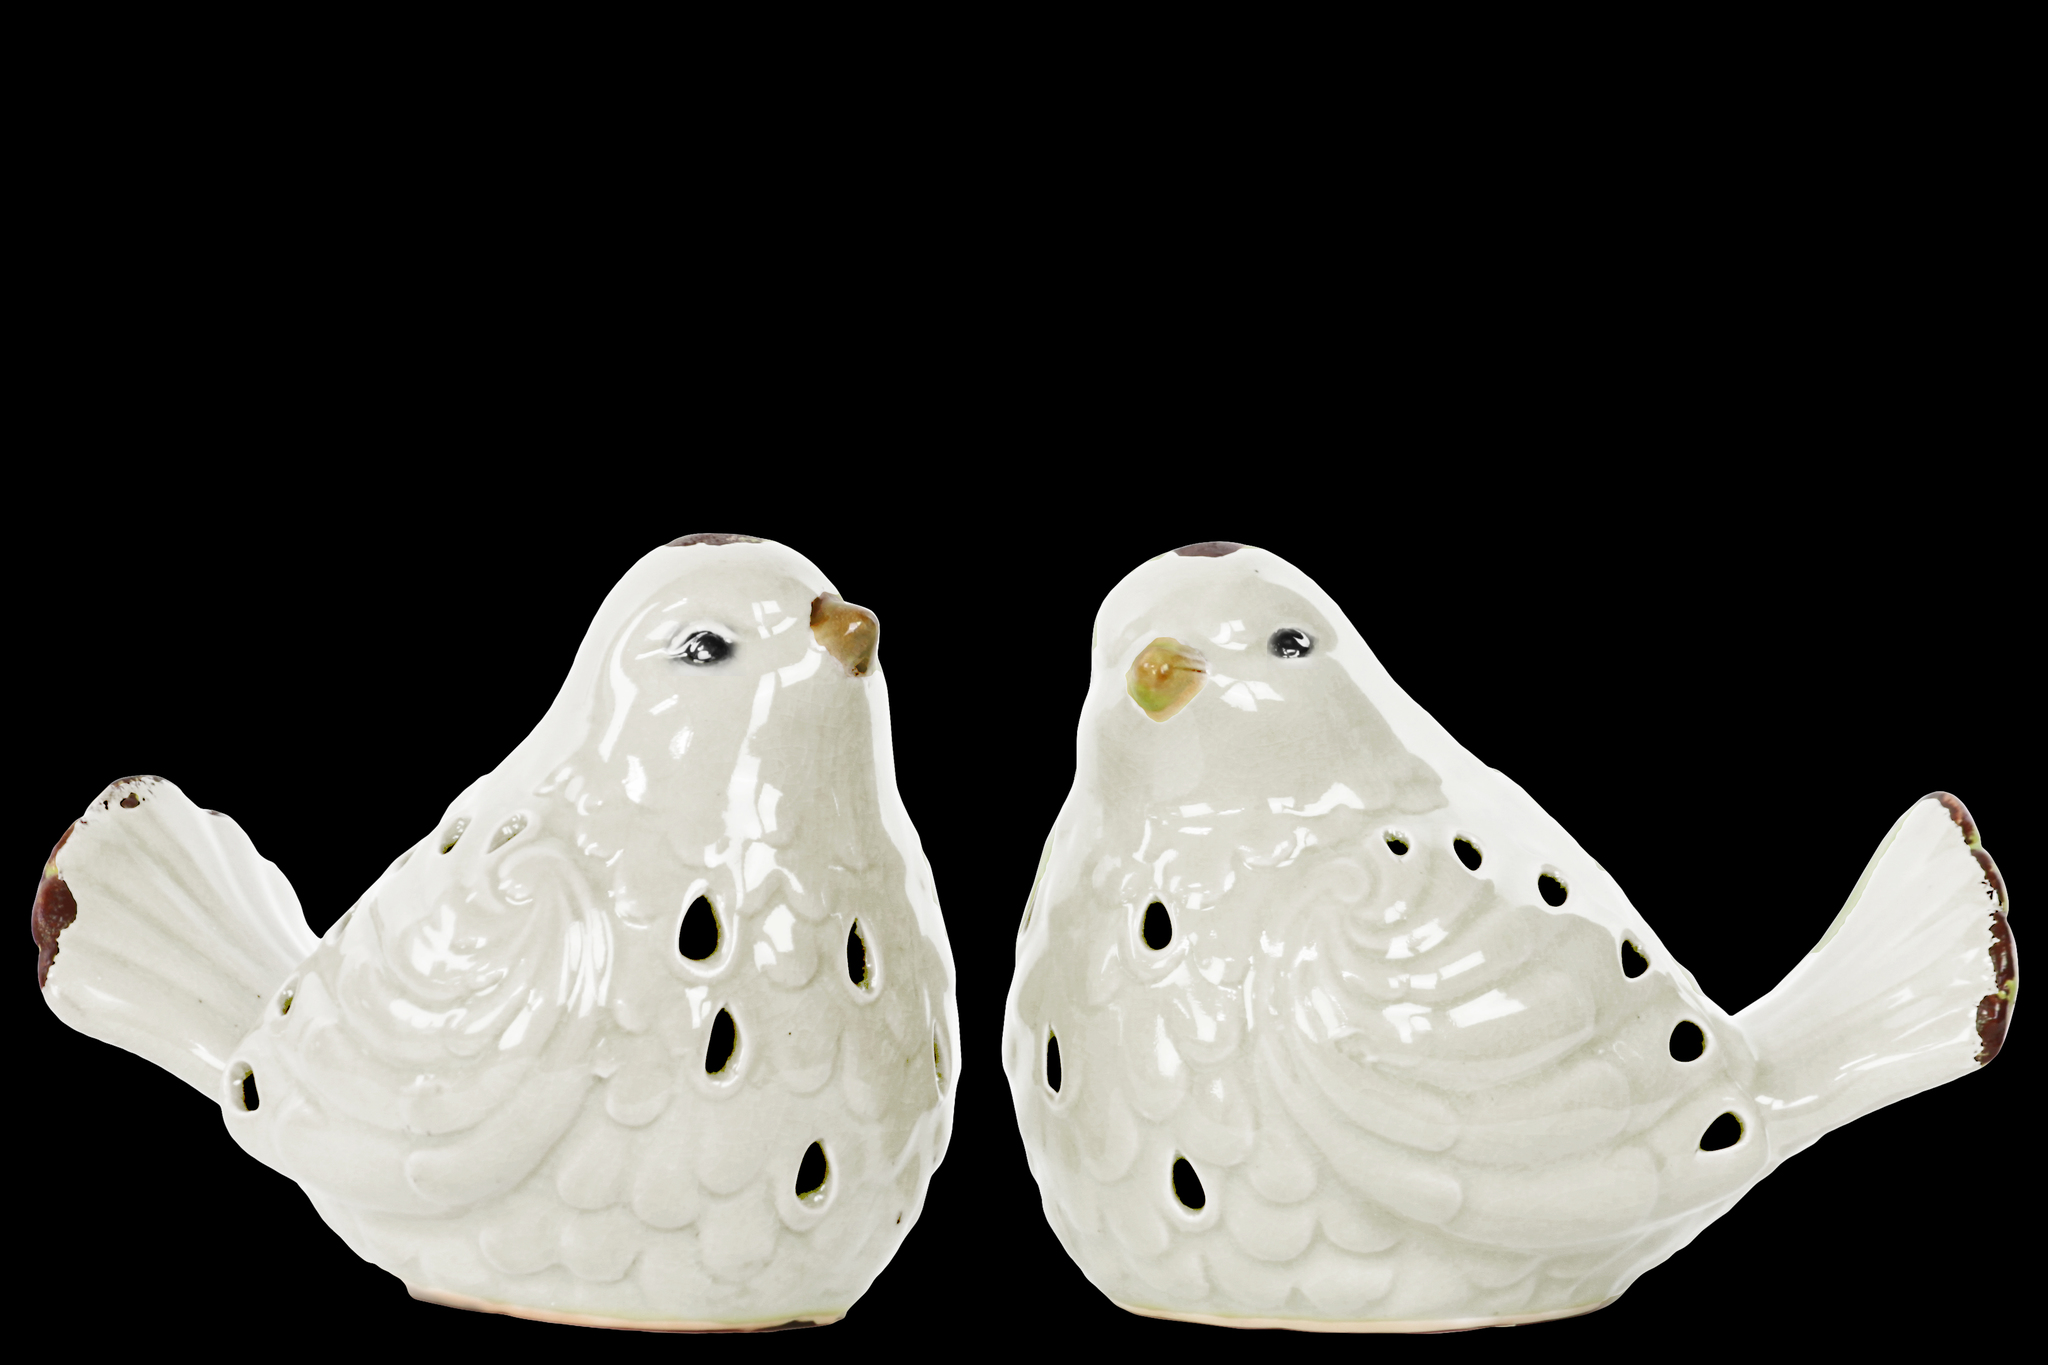 Urban Trends Collection: Porcelain Bird Figurine Gloss Distressed Finish by Urban Trends Collection